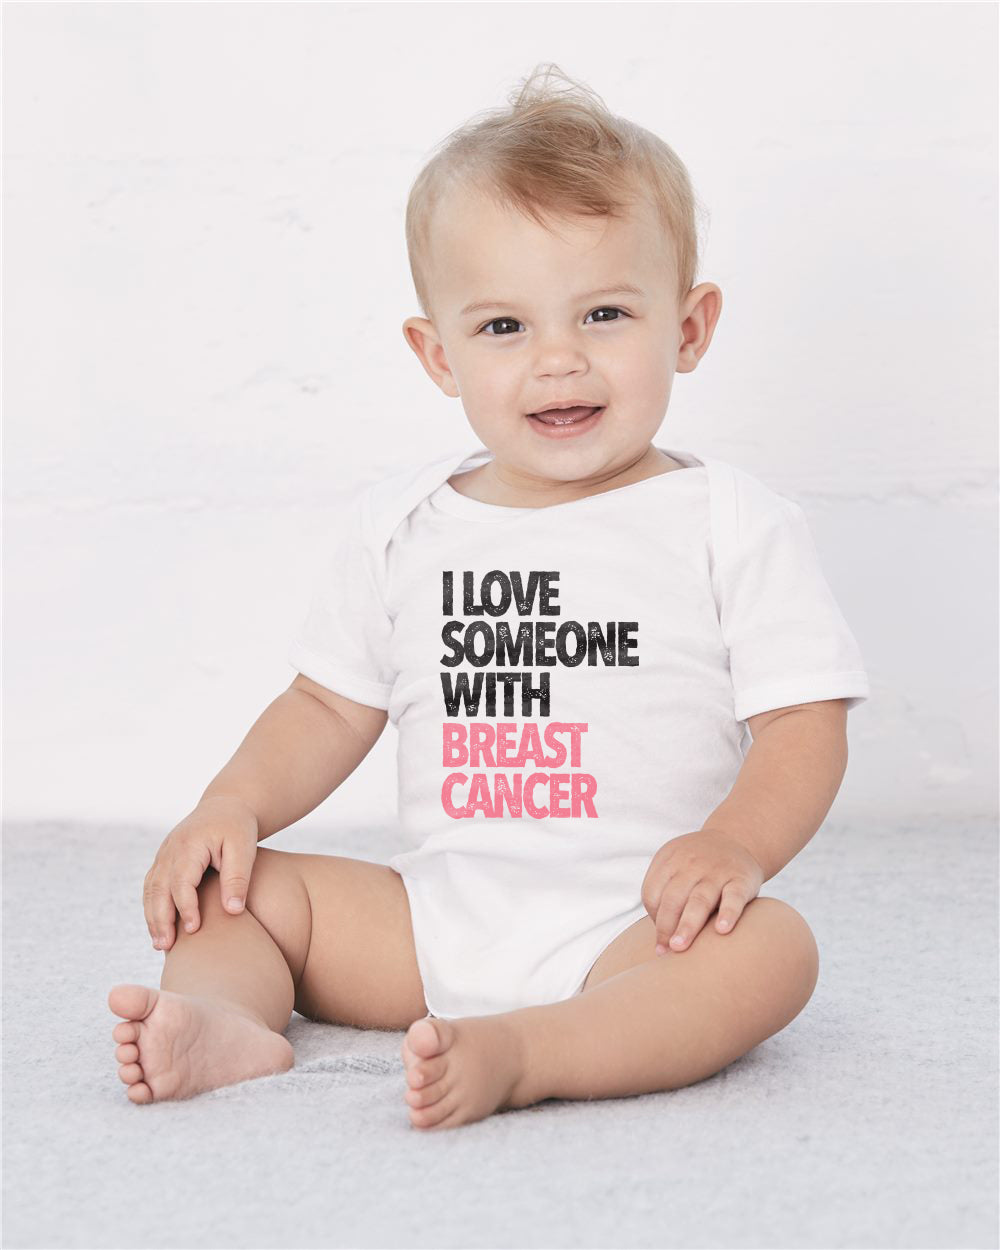 I LOVE SOMEONE WITH BREAST CANCER PREMIUM CLASSIC TEE FOR THE FAMILY